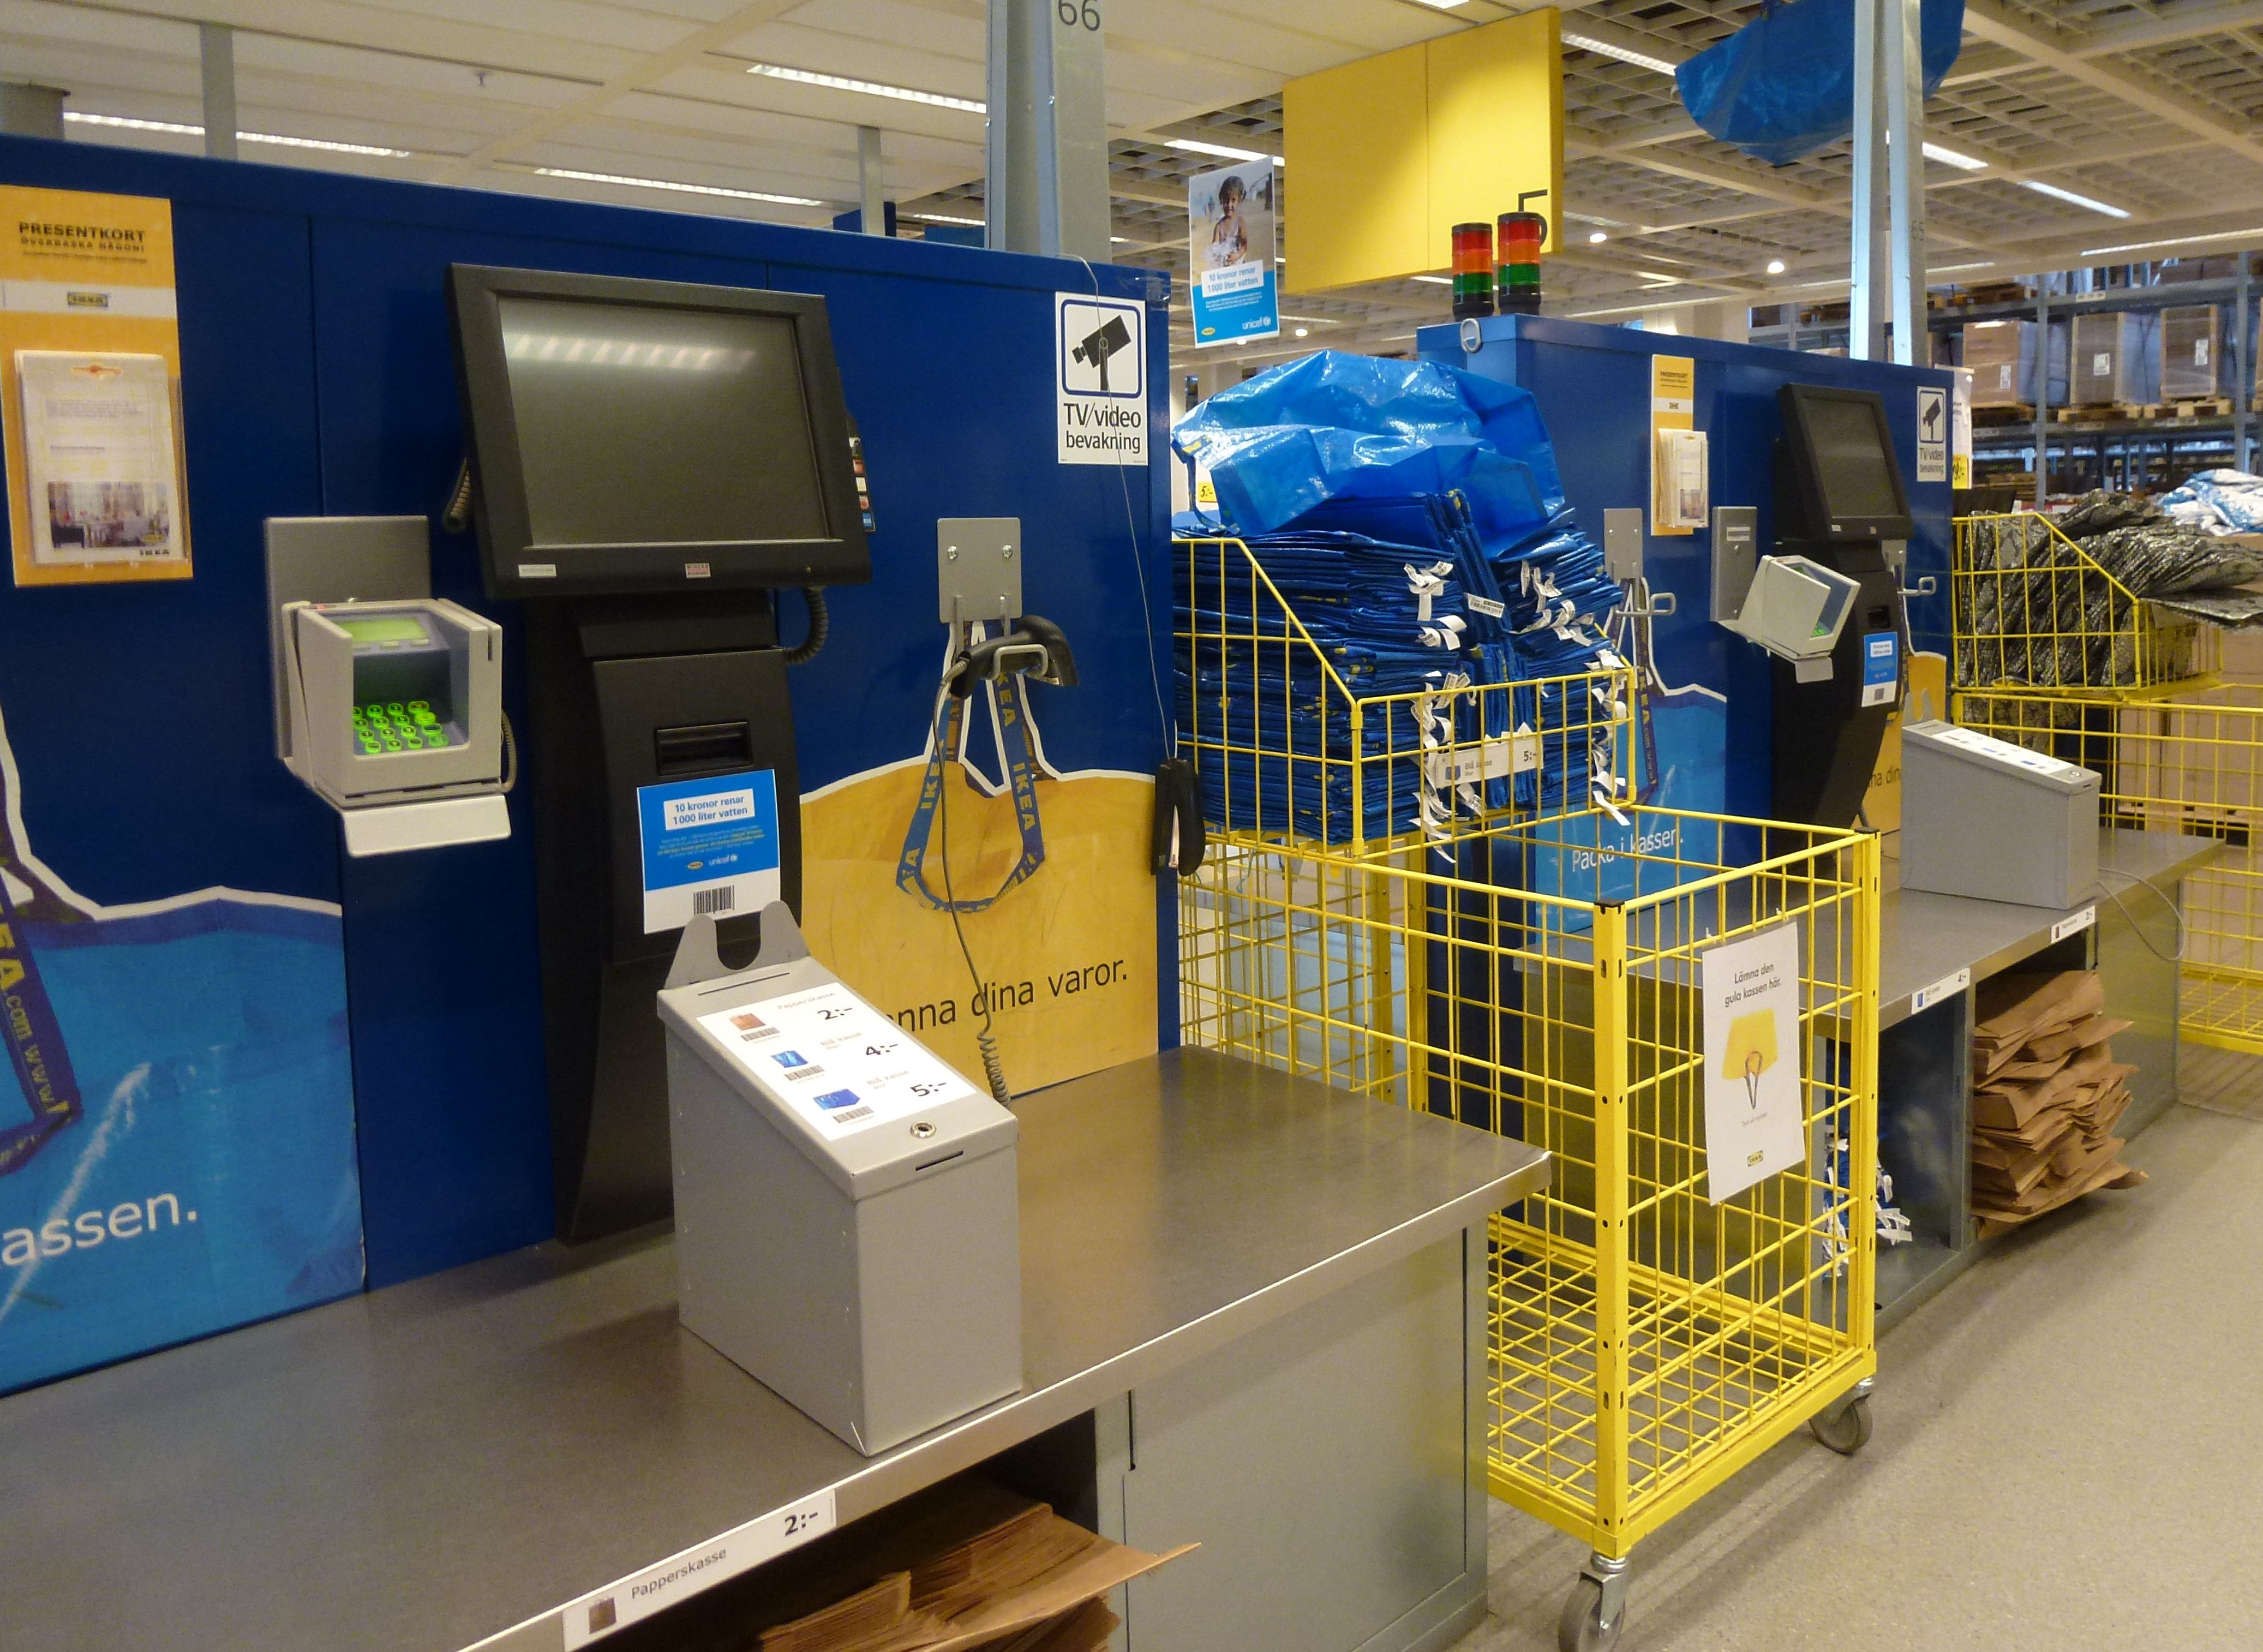 Ongekend File:IKEA kassa 2015.jpg - Wikimedia Commons AD-27